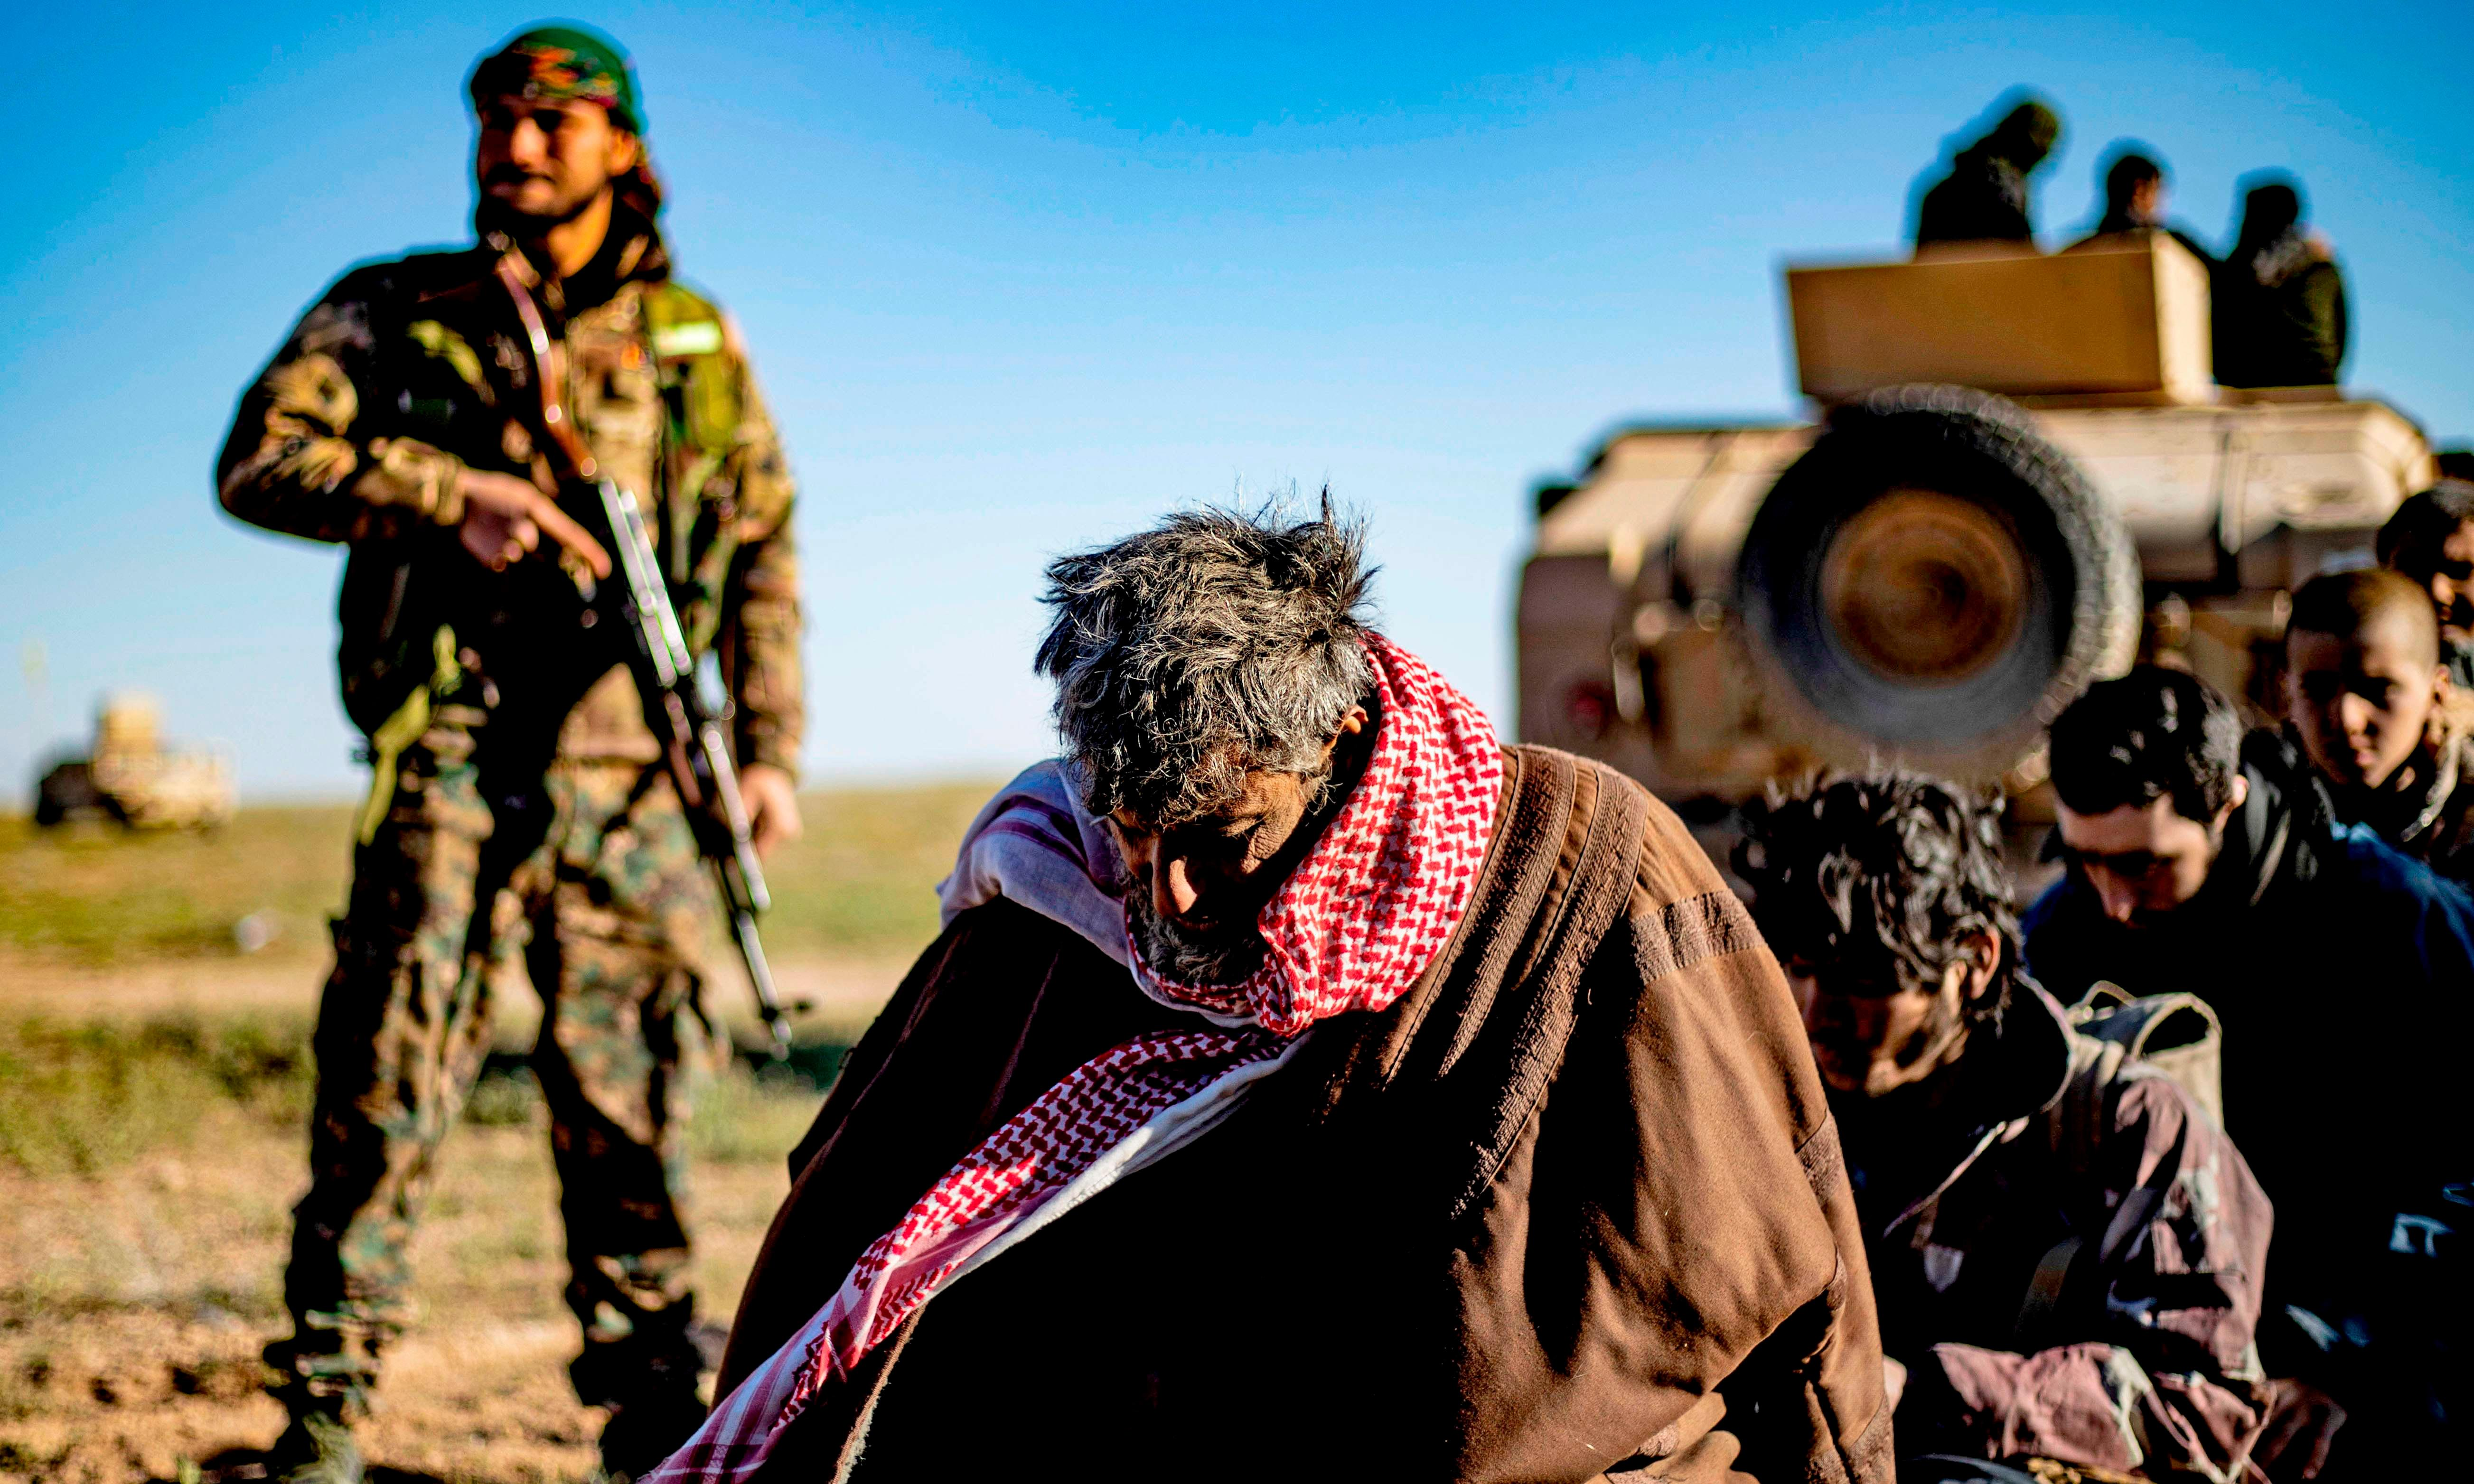 British Isis fighters in Syria 'may be freed if US allows Turkey invasion'